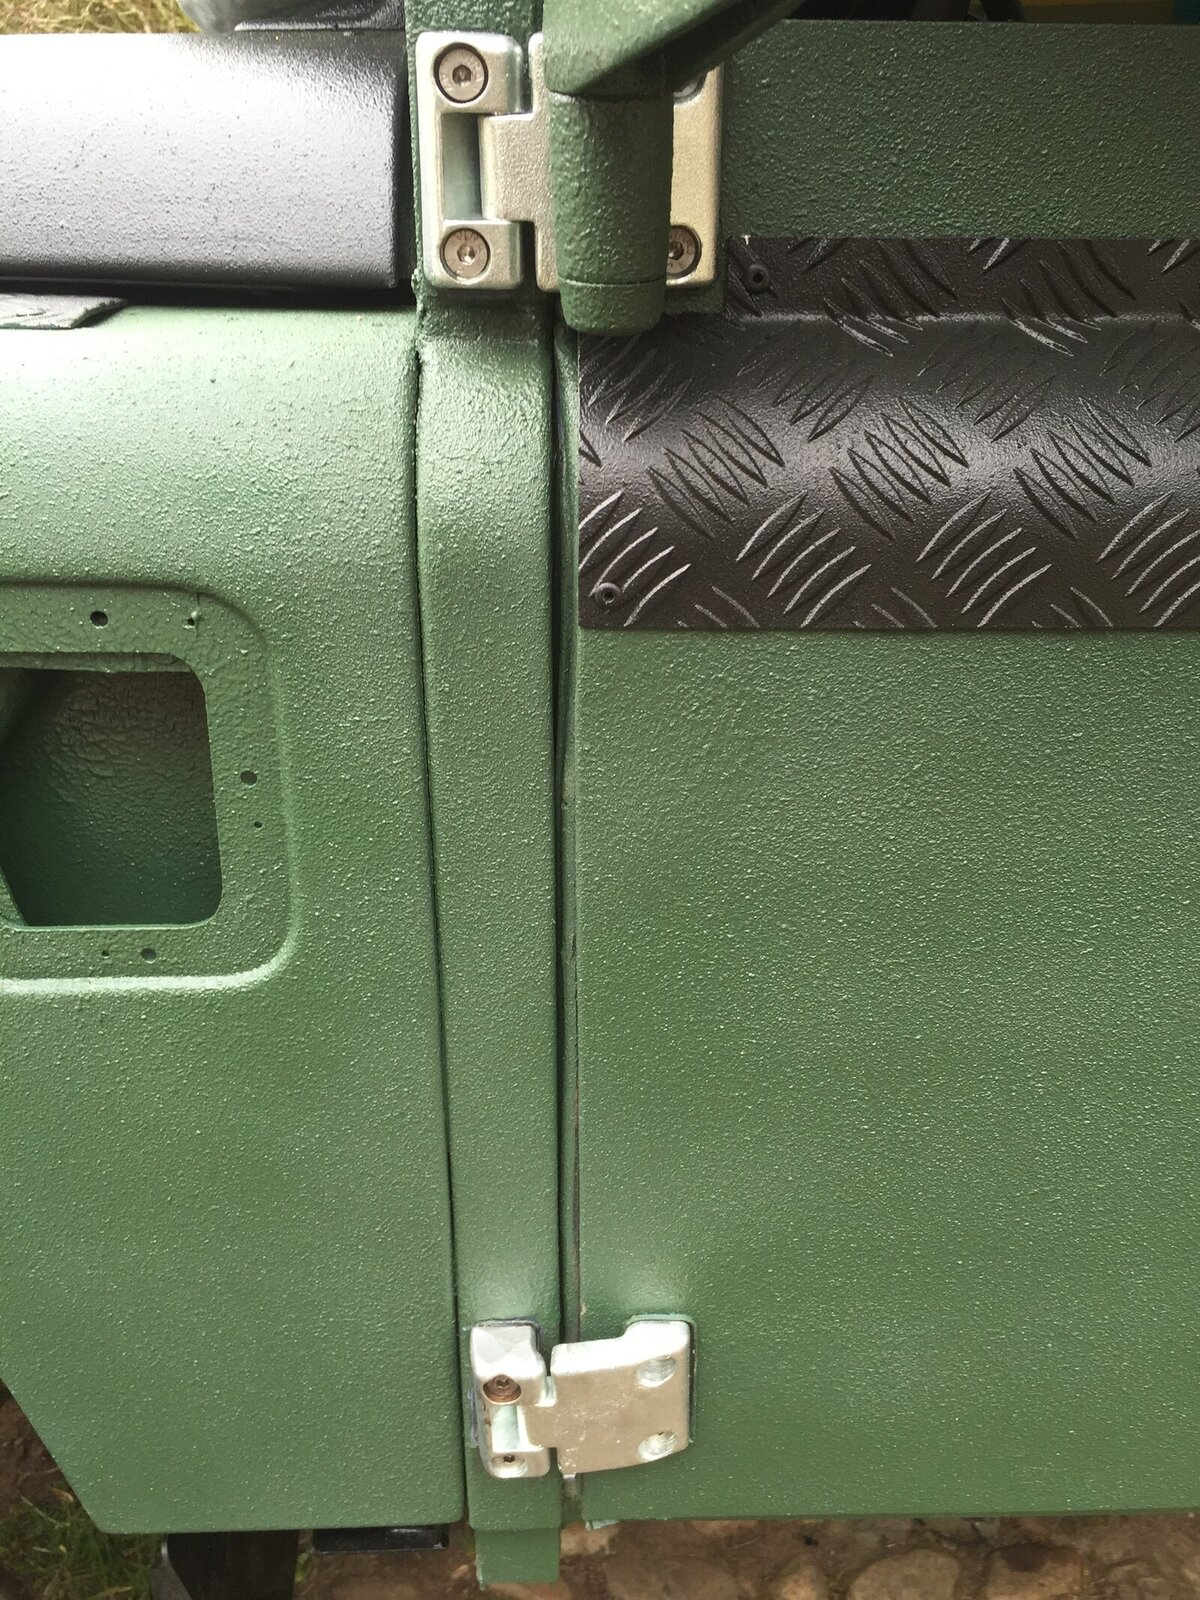 IMG_1300. & series doors on a defender - problems with alignment | LandyZone ... pezcame.com